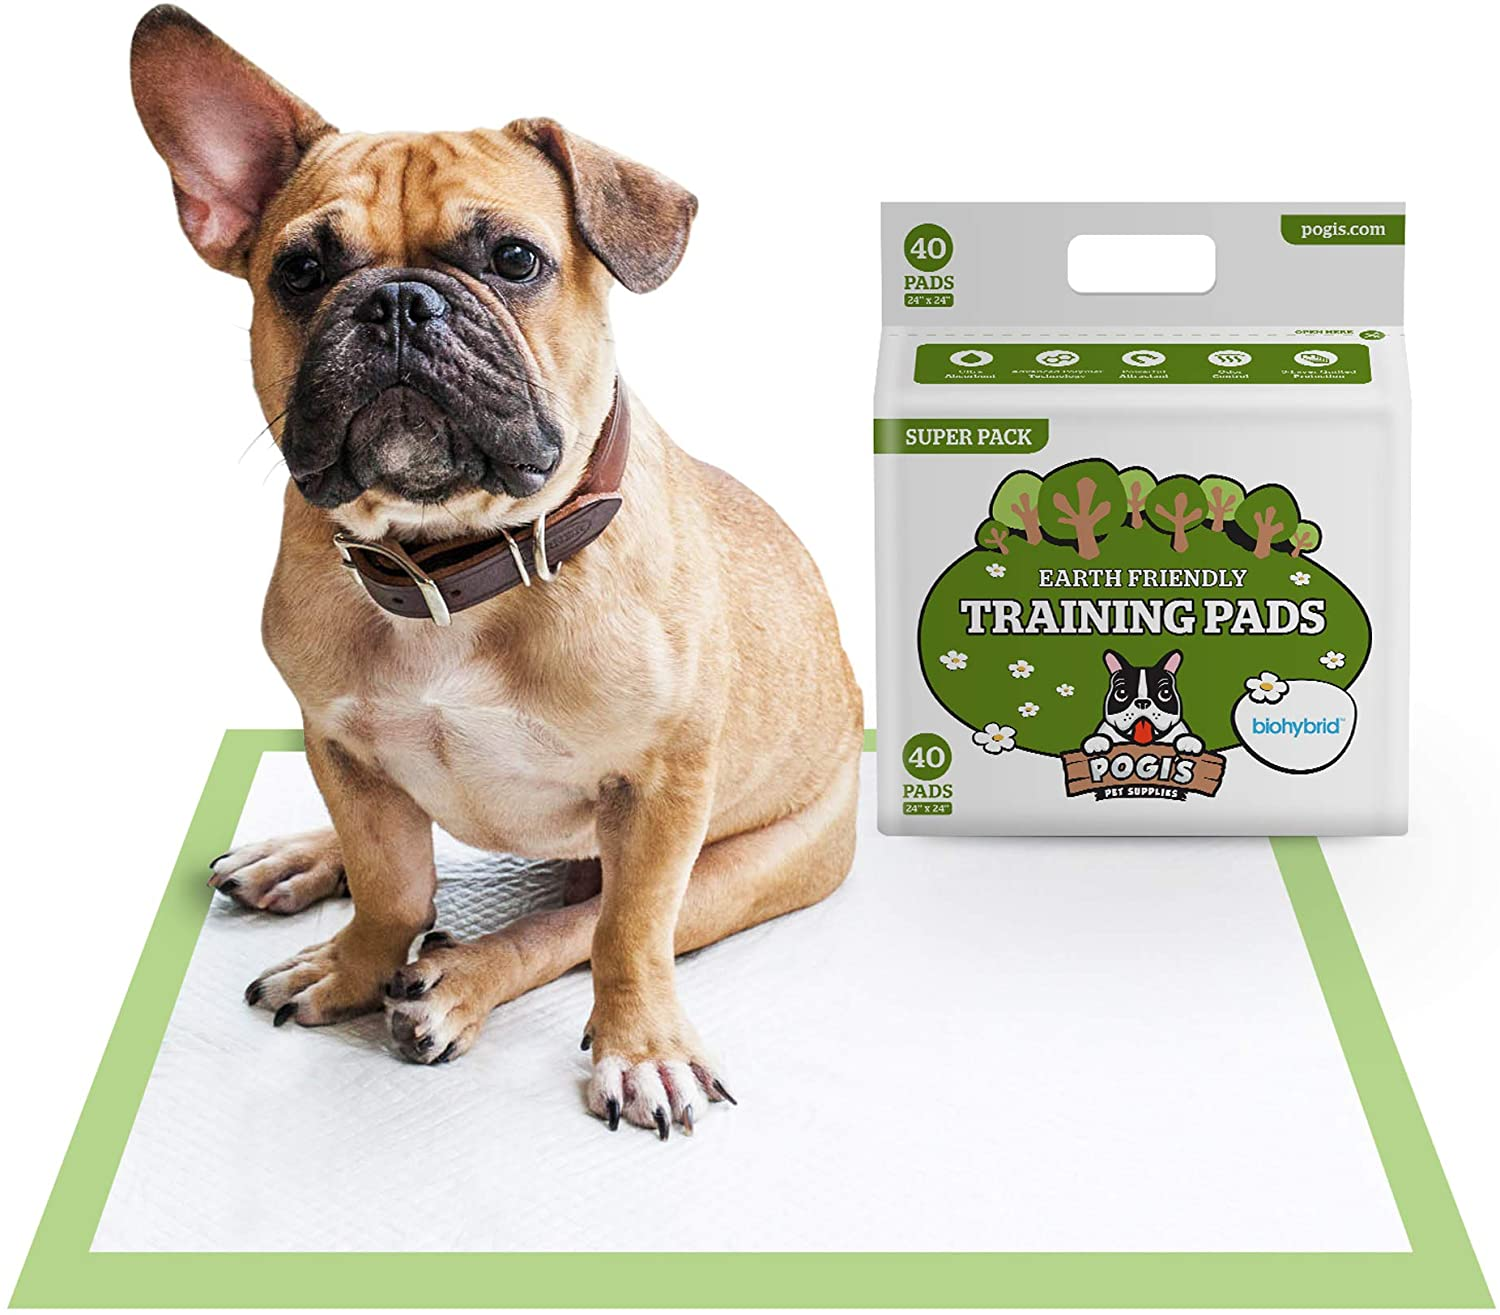 Pogi's Training Pads - Large, Super-Absorbent, Earth-Friendly Puppy Pee Pads for Dogs